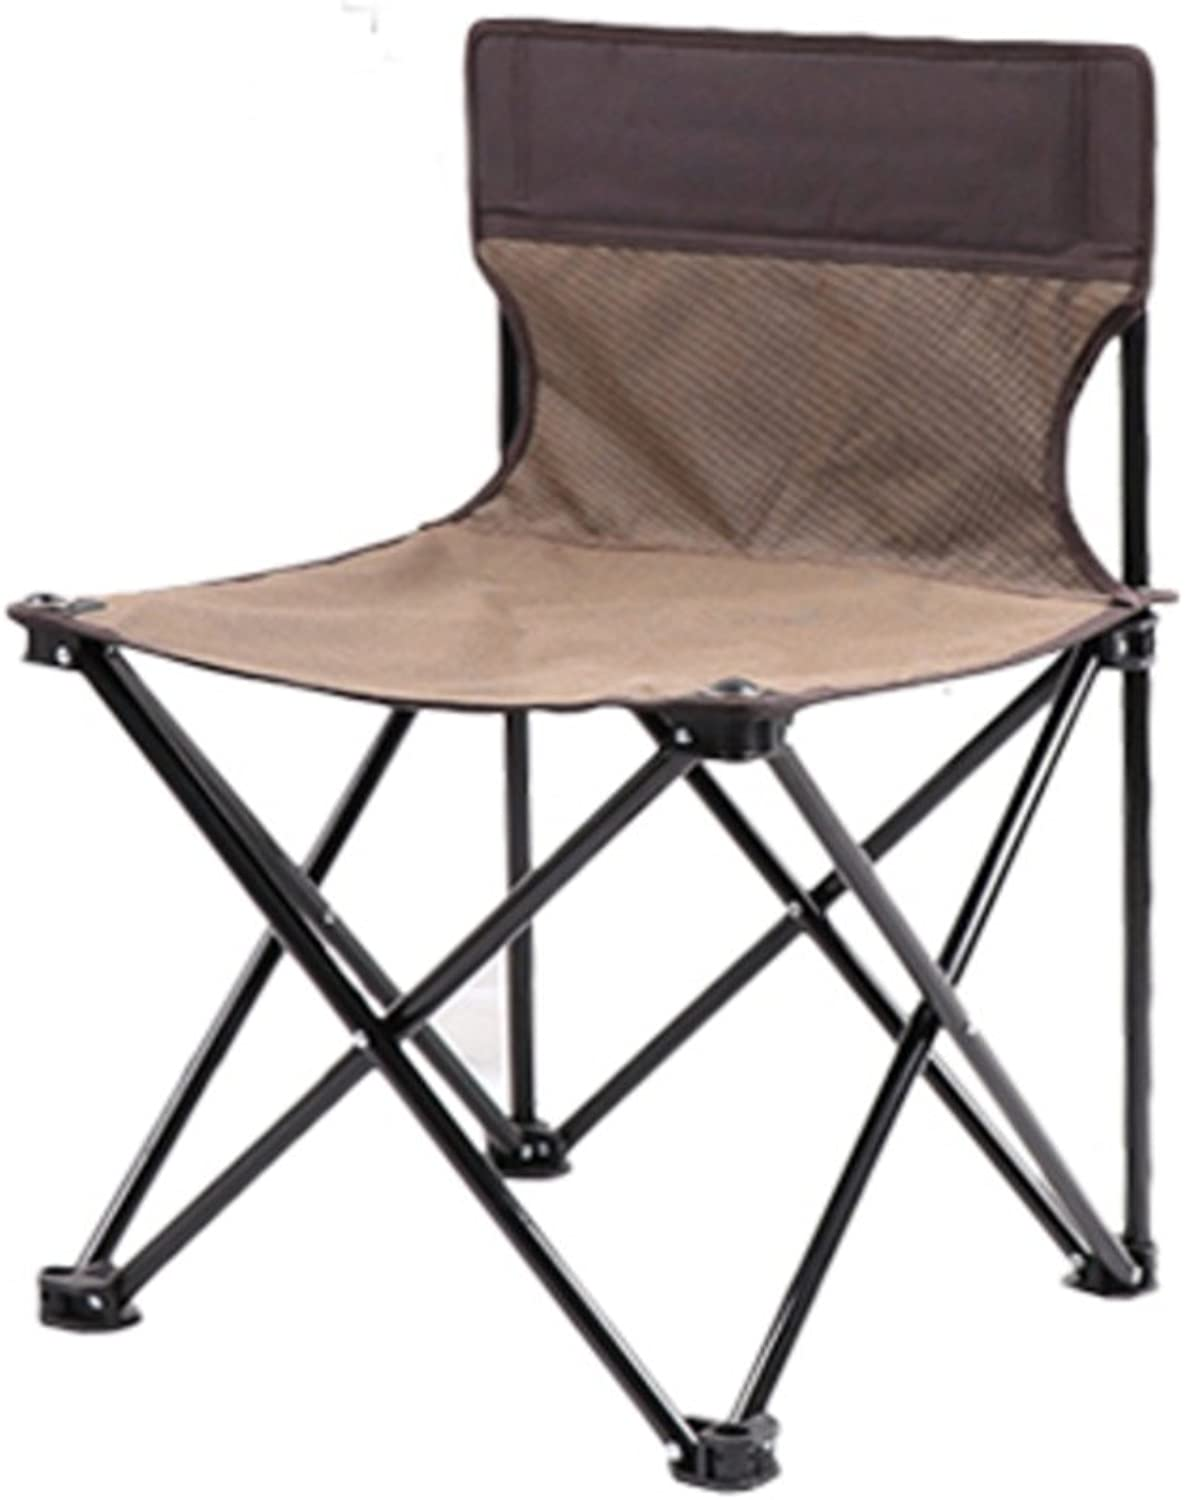 HM&DX Portable Folding Chairs Outdoor Camping Chairs Beach Chair Stool with Carrying Bag for Camping Hiking Beach Fishing Garden